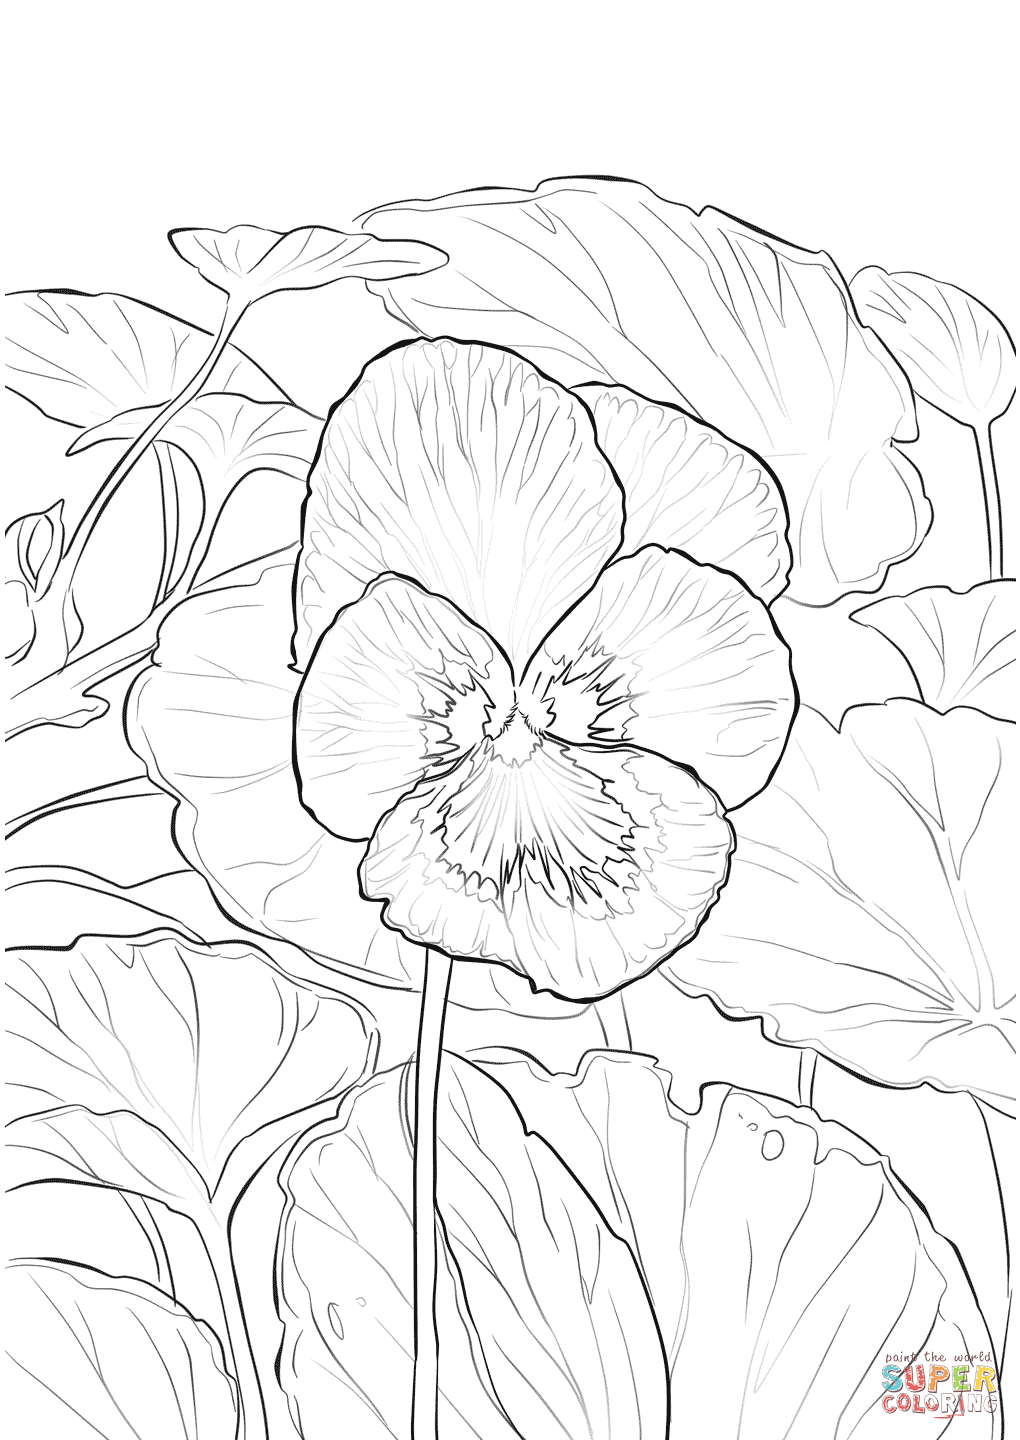 Pansy coloring #6, Download drawings